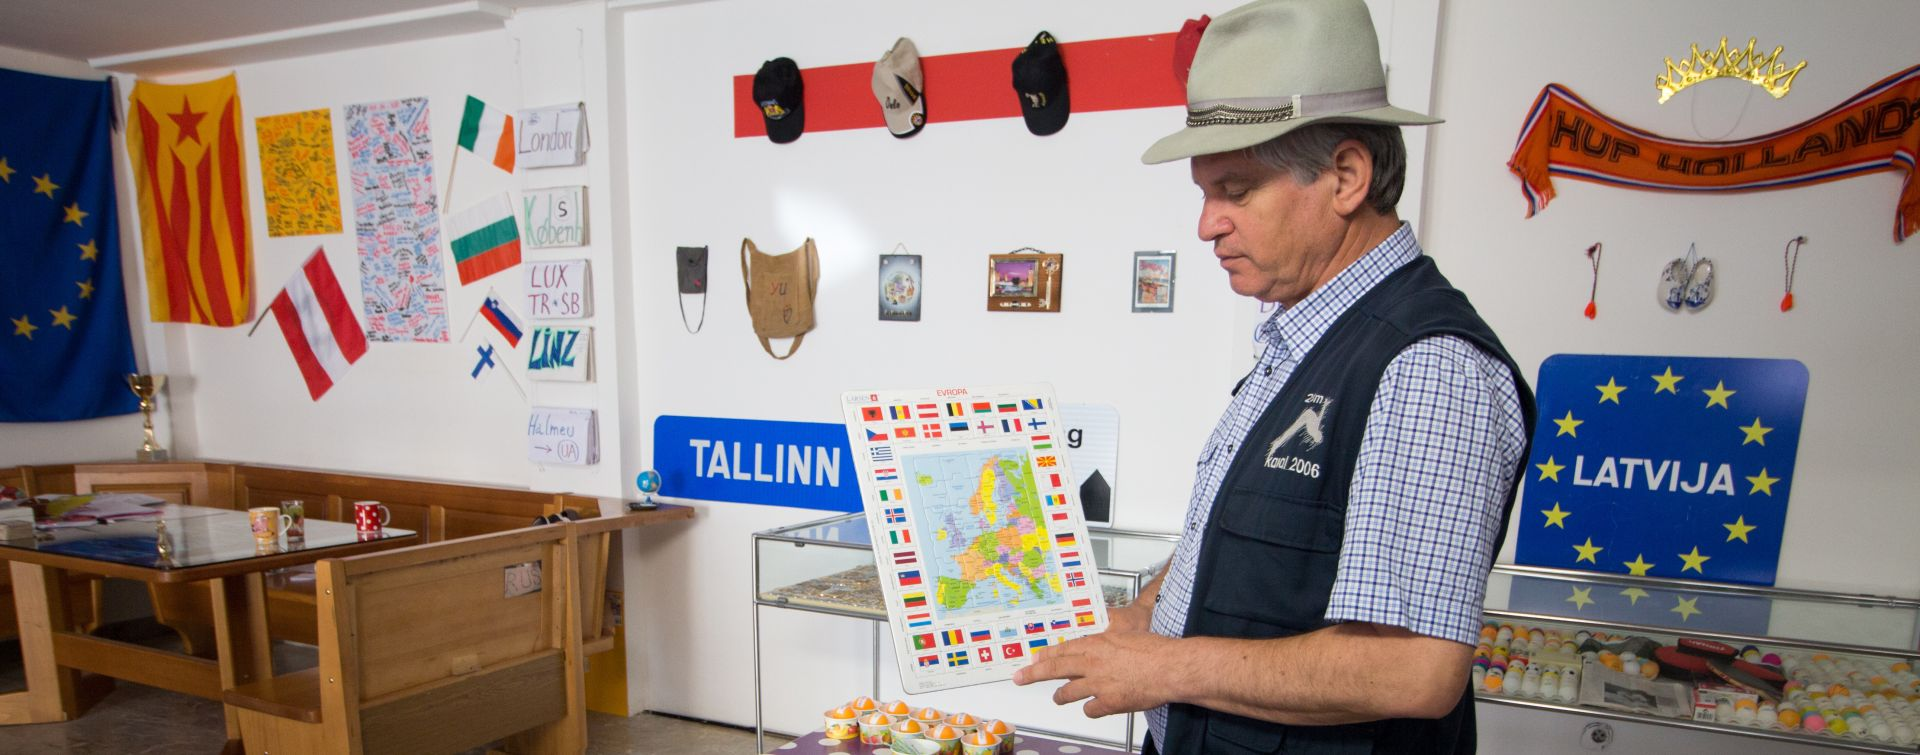 Hitchhiking Museum in Slovenia